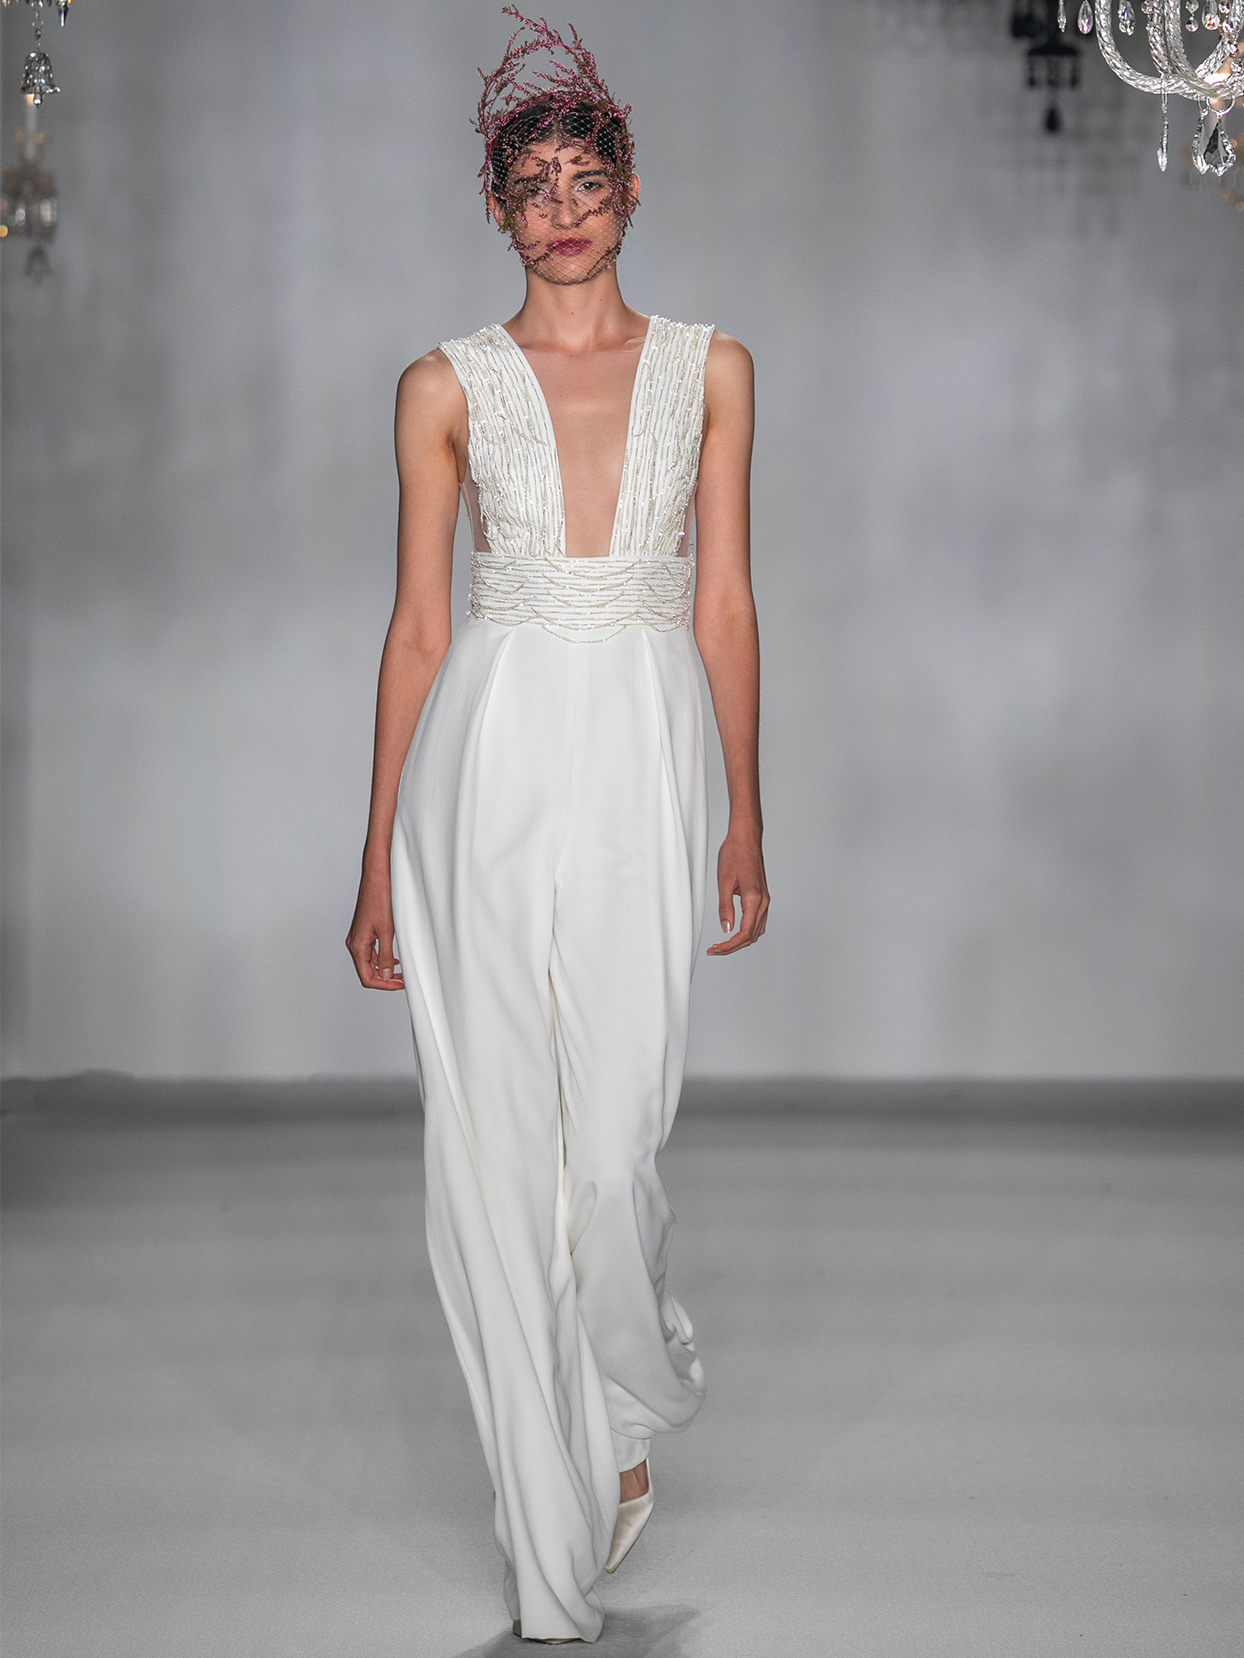 anne barge plunging neck pants suit wedding dress fall 2020